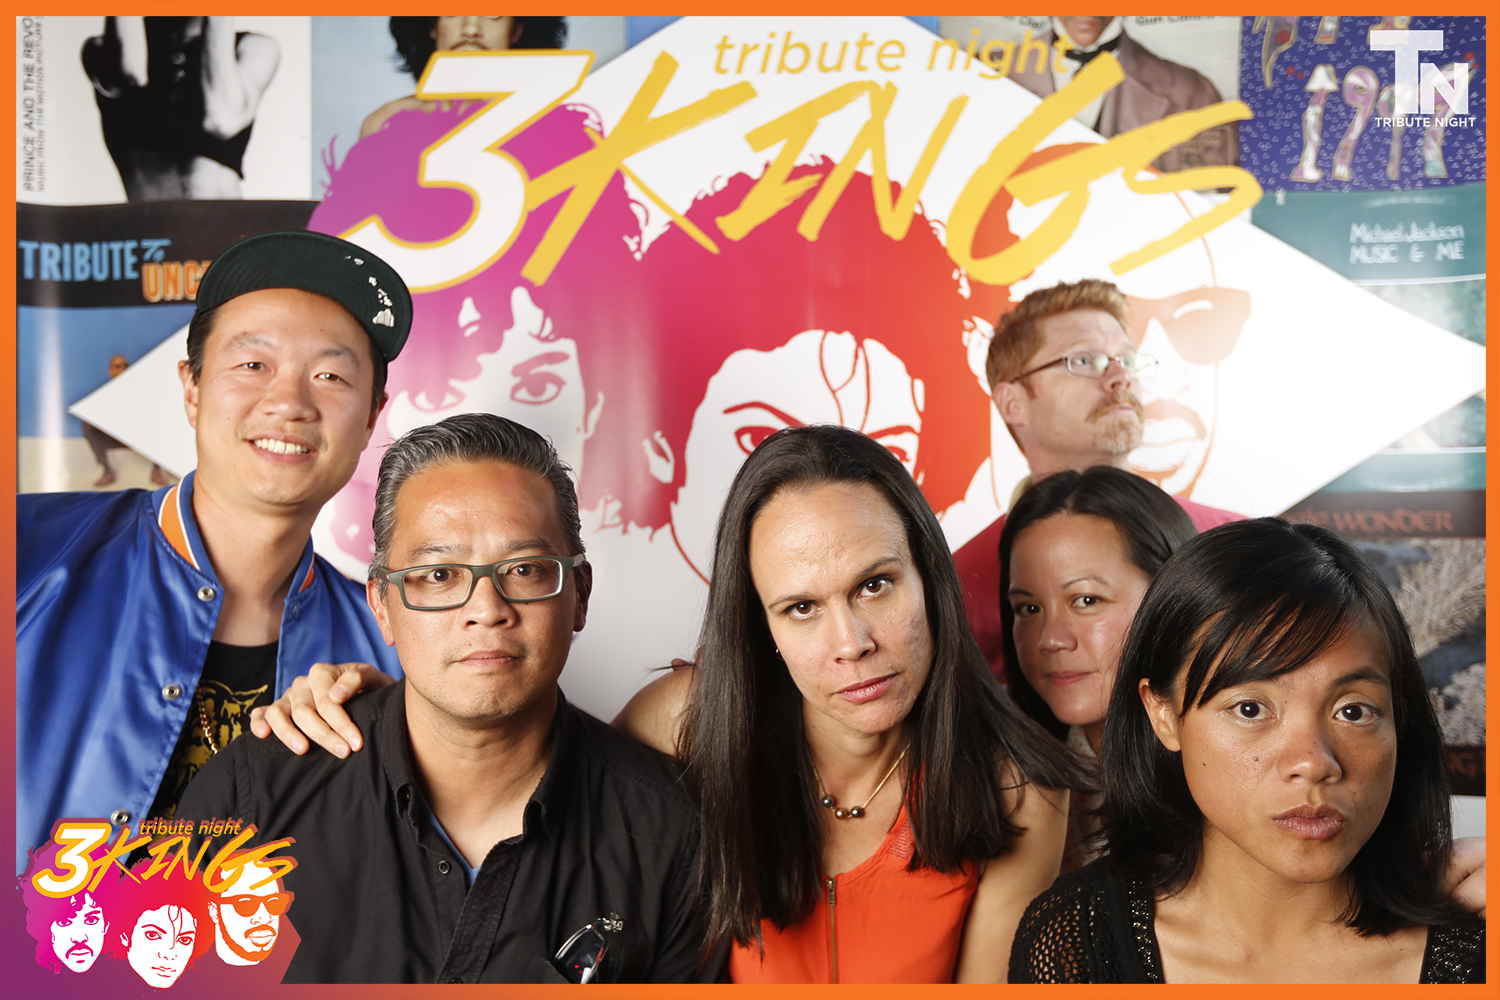 3kings Tribute Night Logo183.jpg